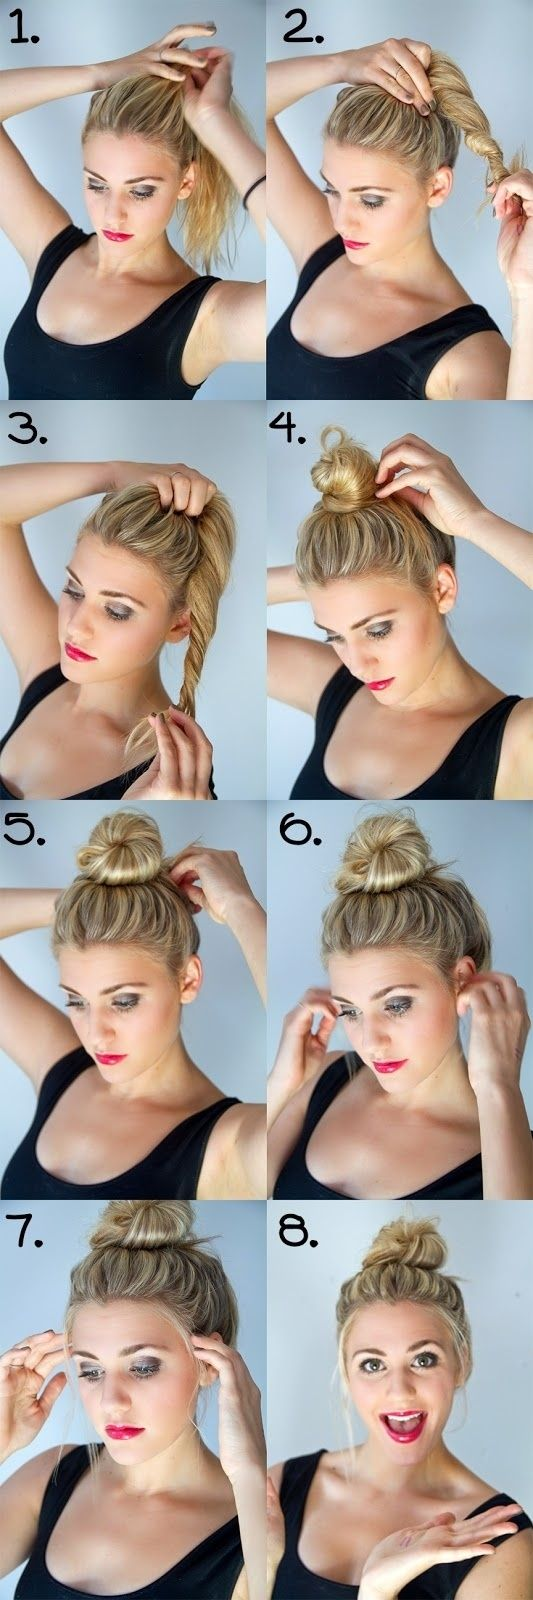 5 Gorgeous Beach Hairstyles to Rock This Summer | Her Campus